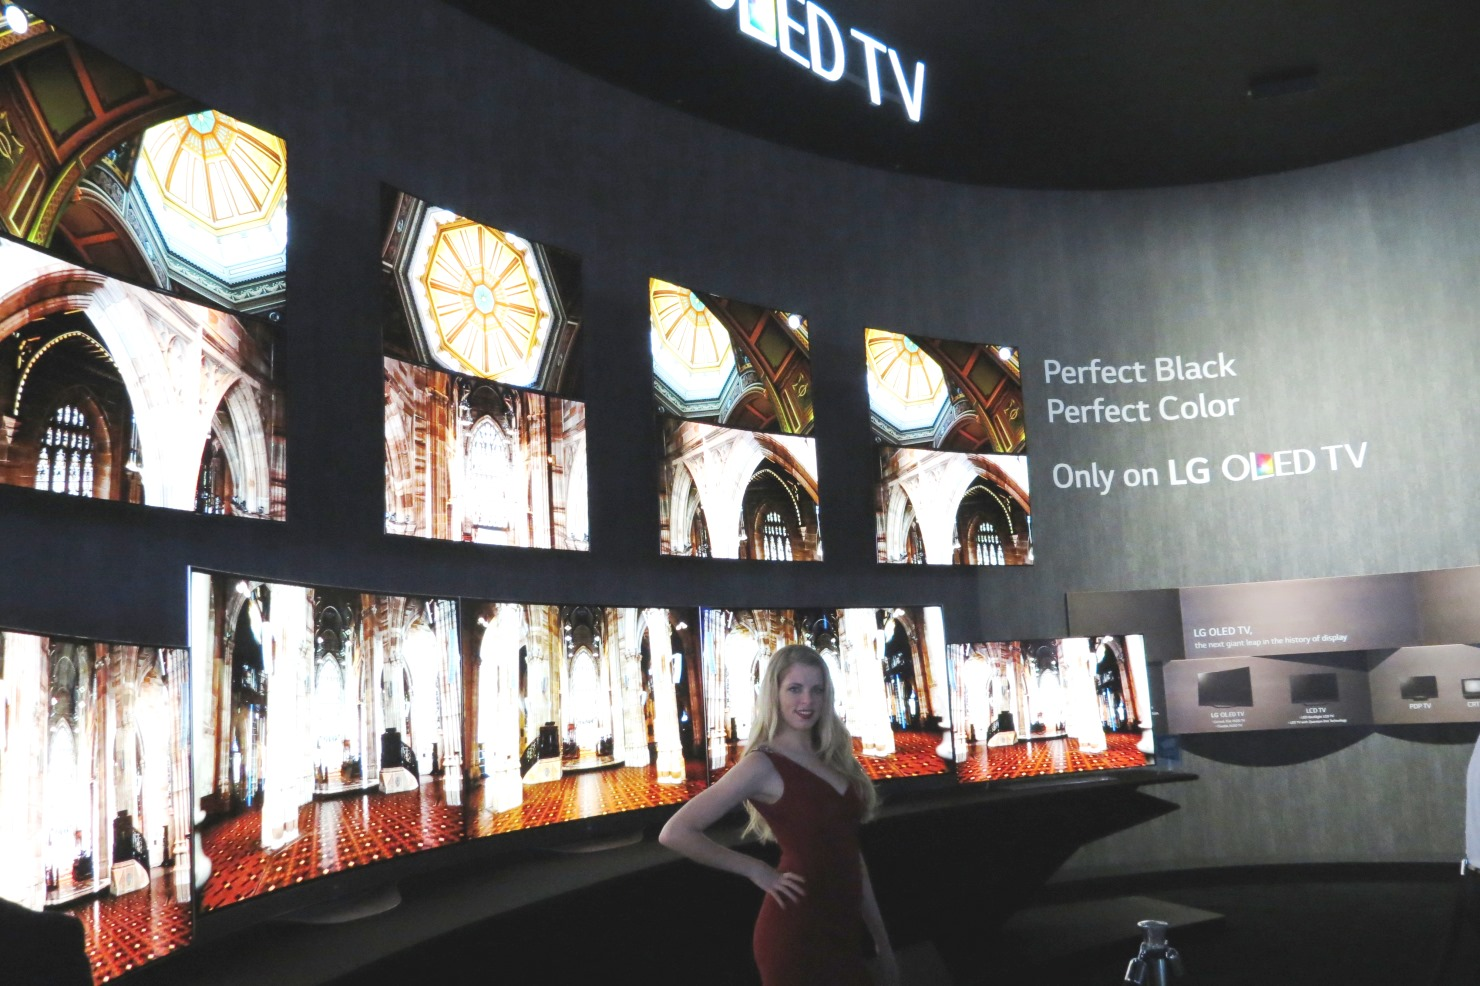 LG OLED 4K televisions